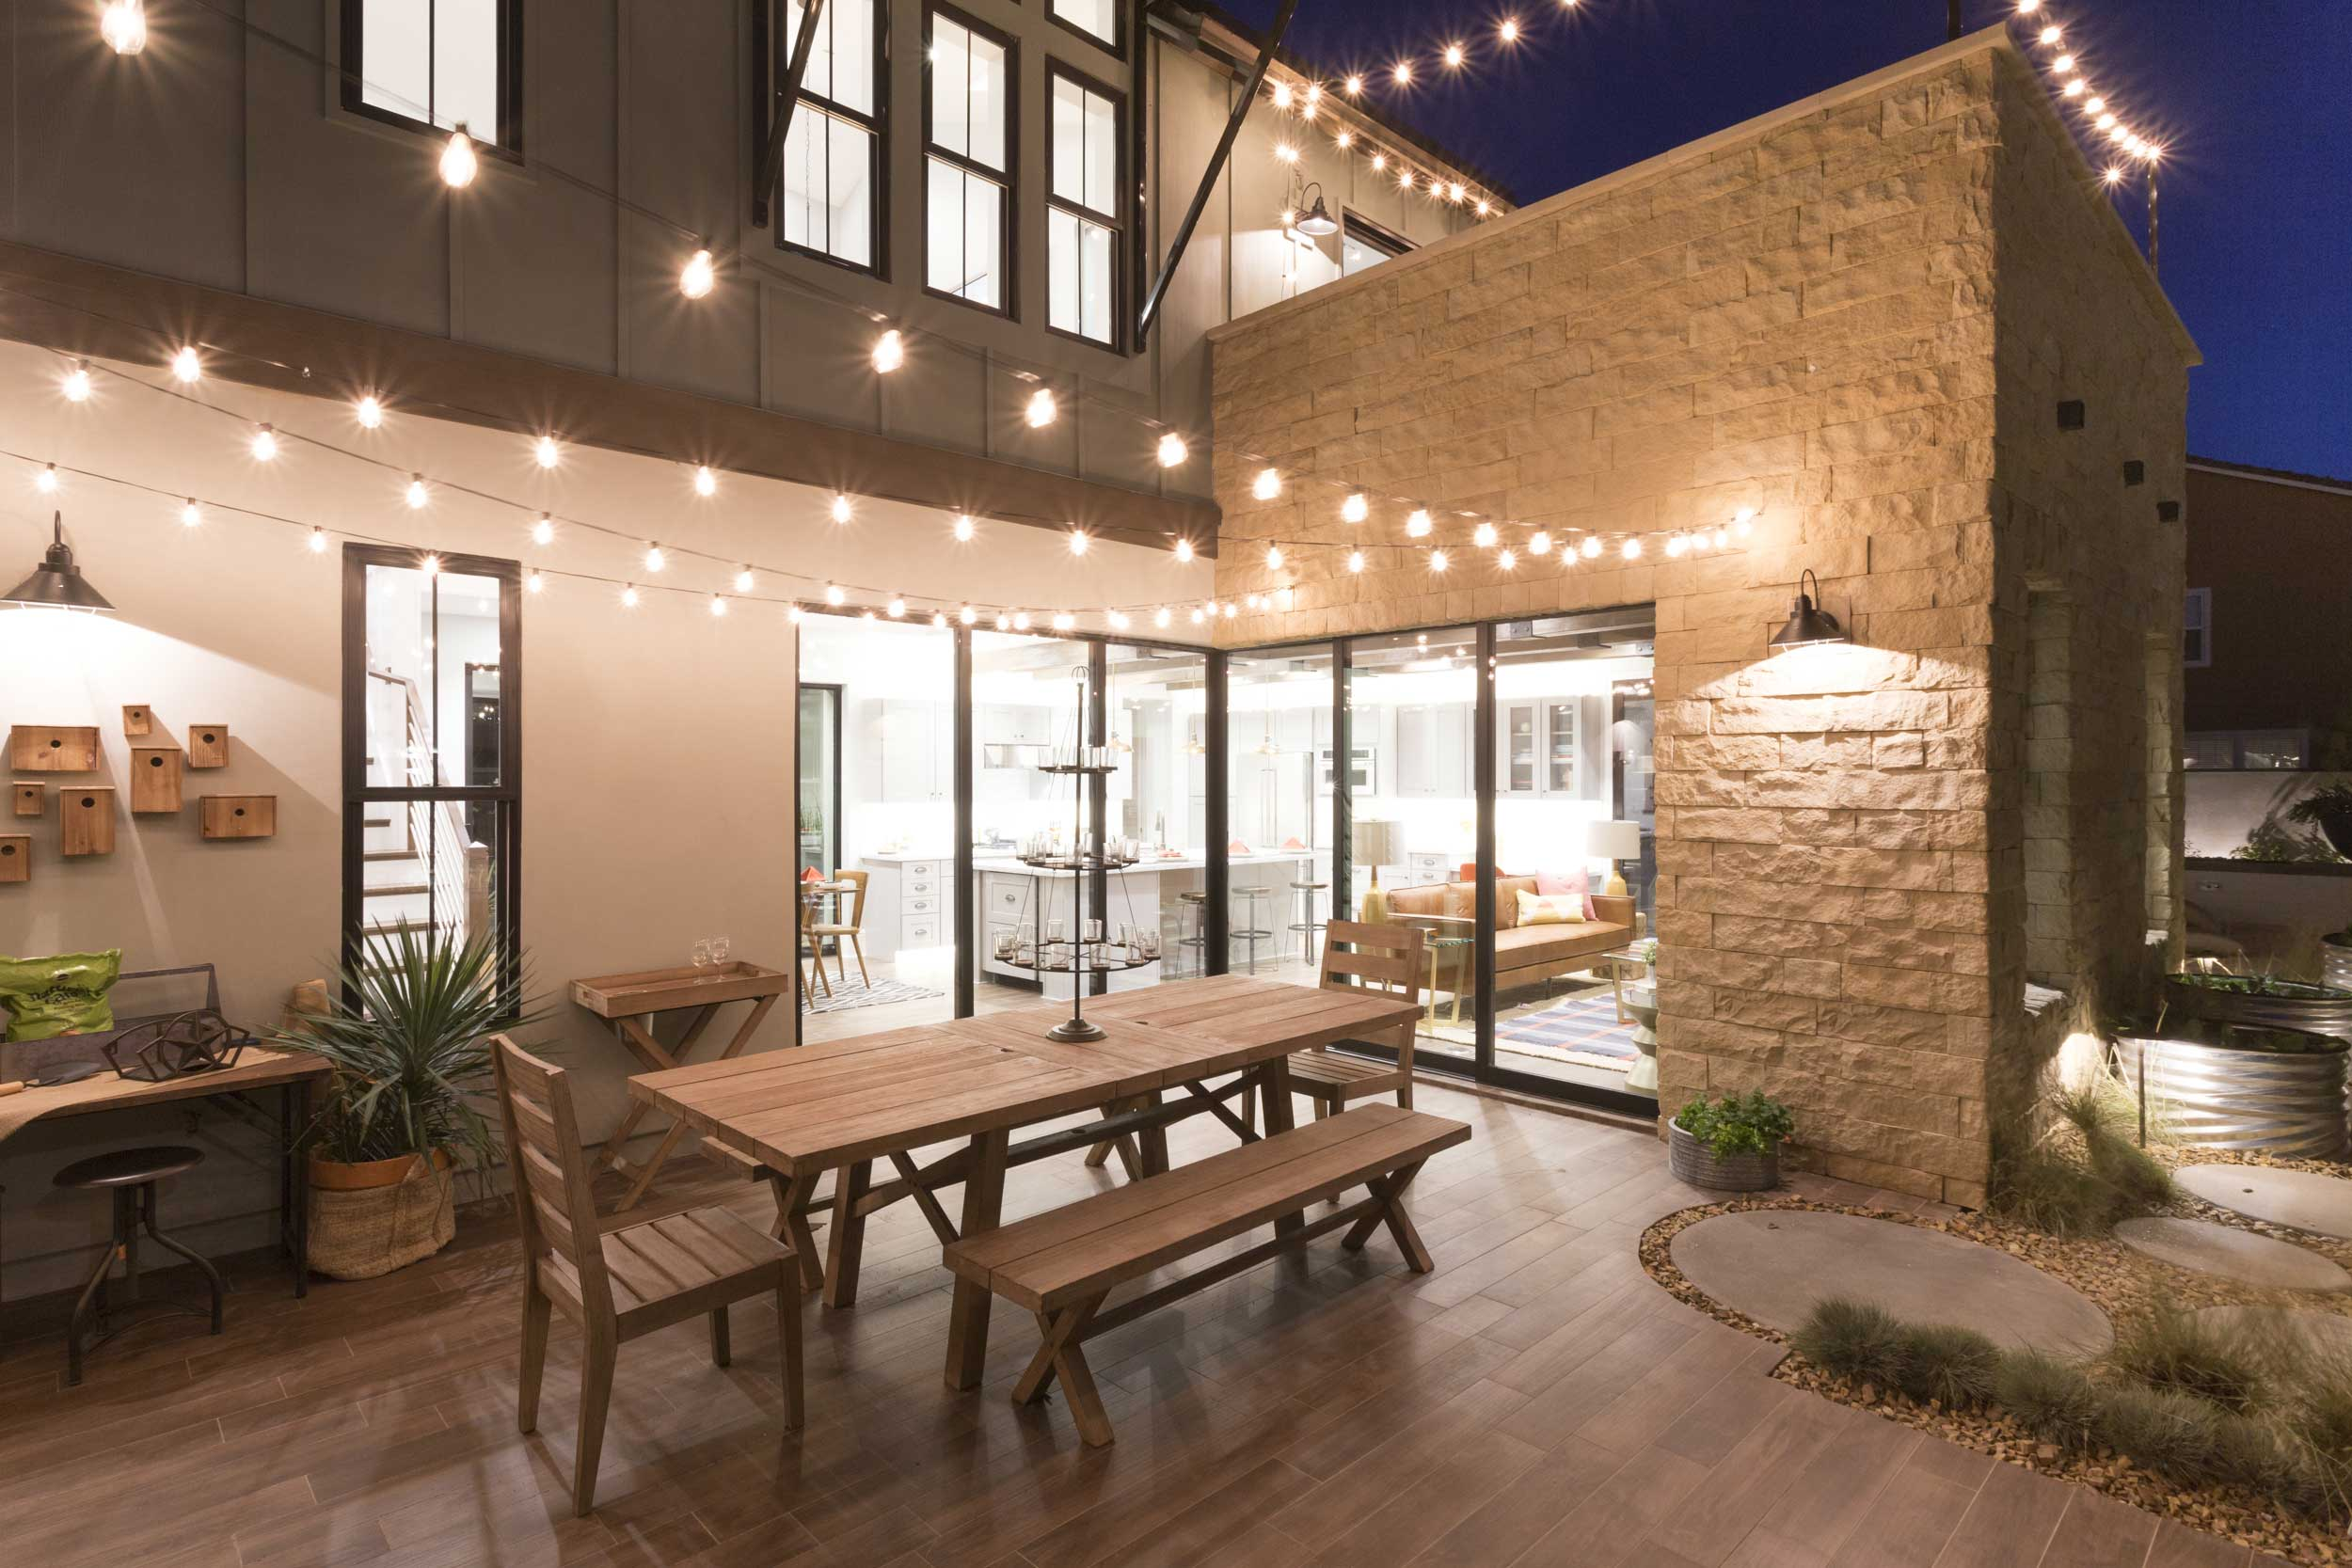 The Responsive Home Project Completes Construction On The Ideal Home For Young Buyers